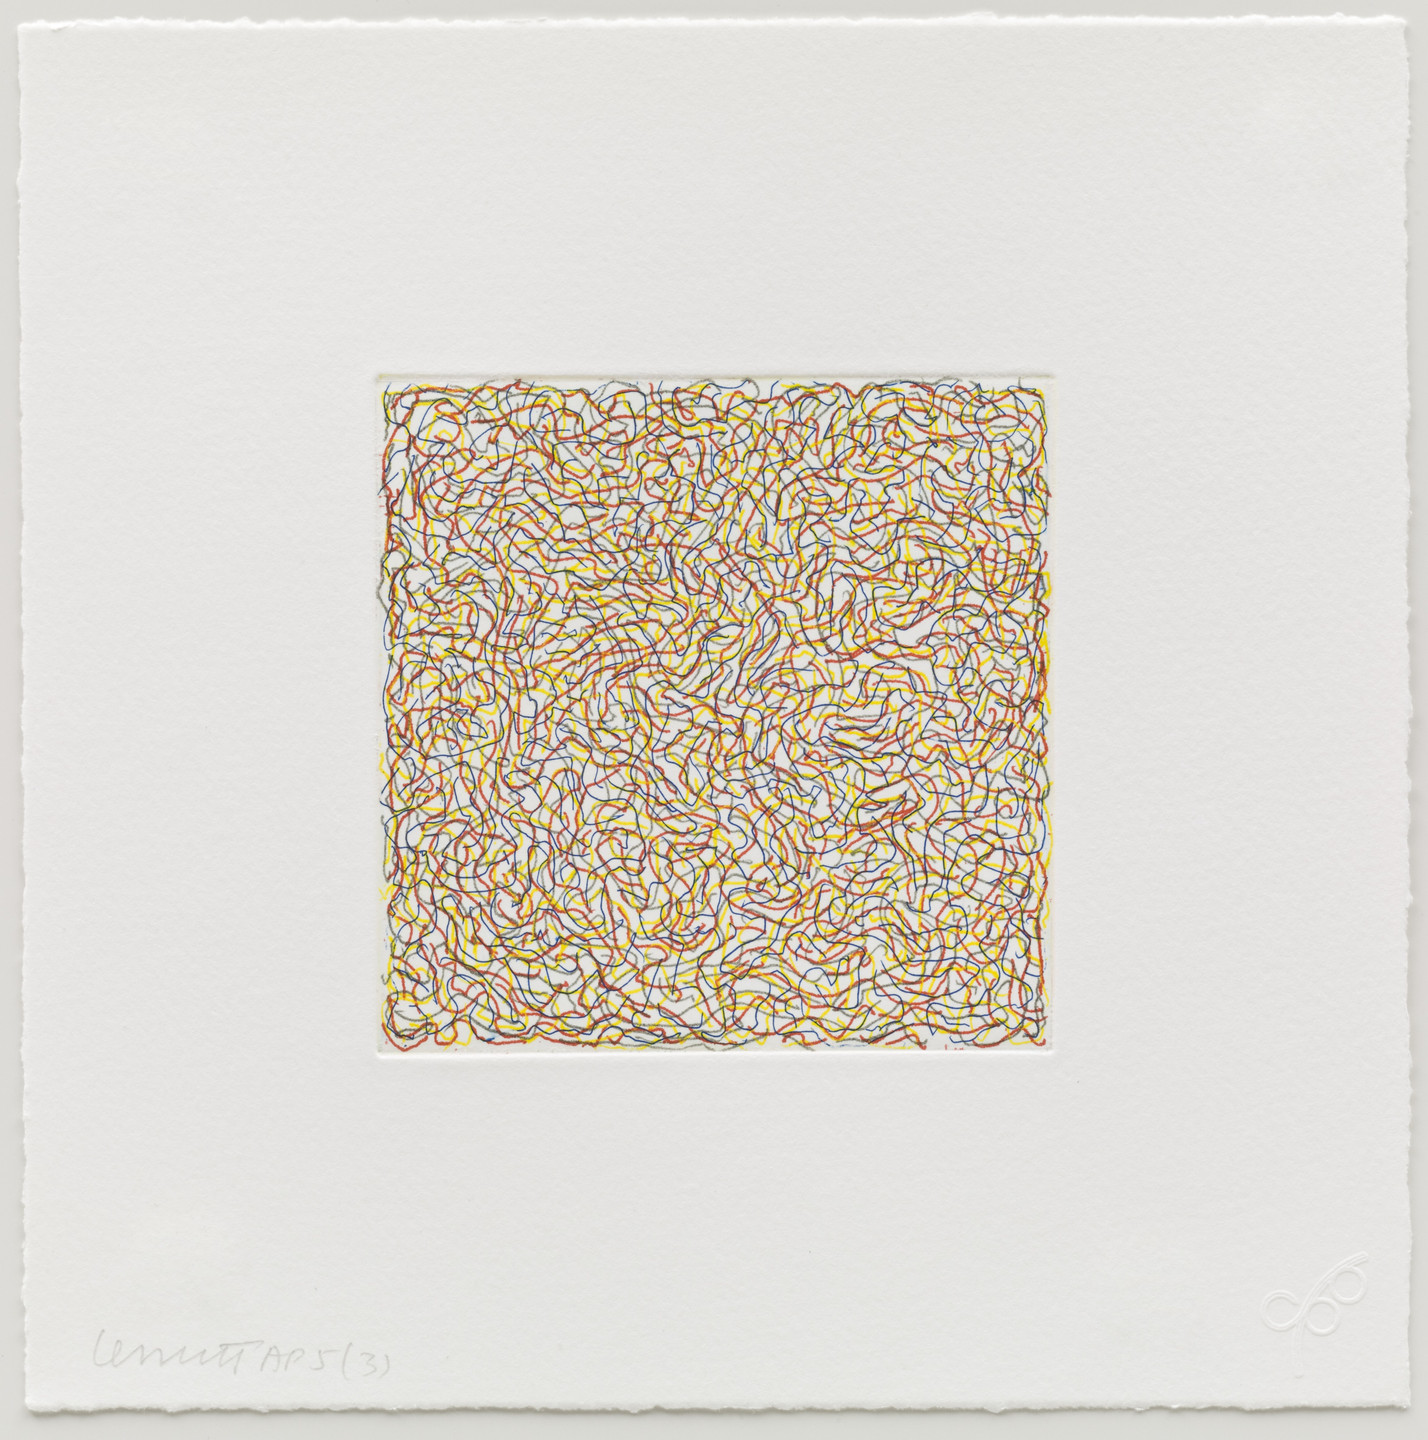 Sol LeWitt. (3) from Eight Small Etchings/Color. 1999